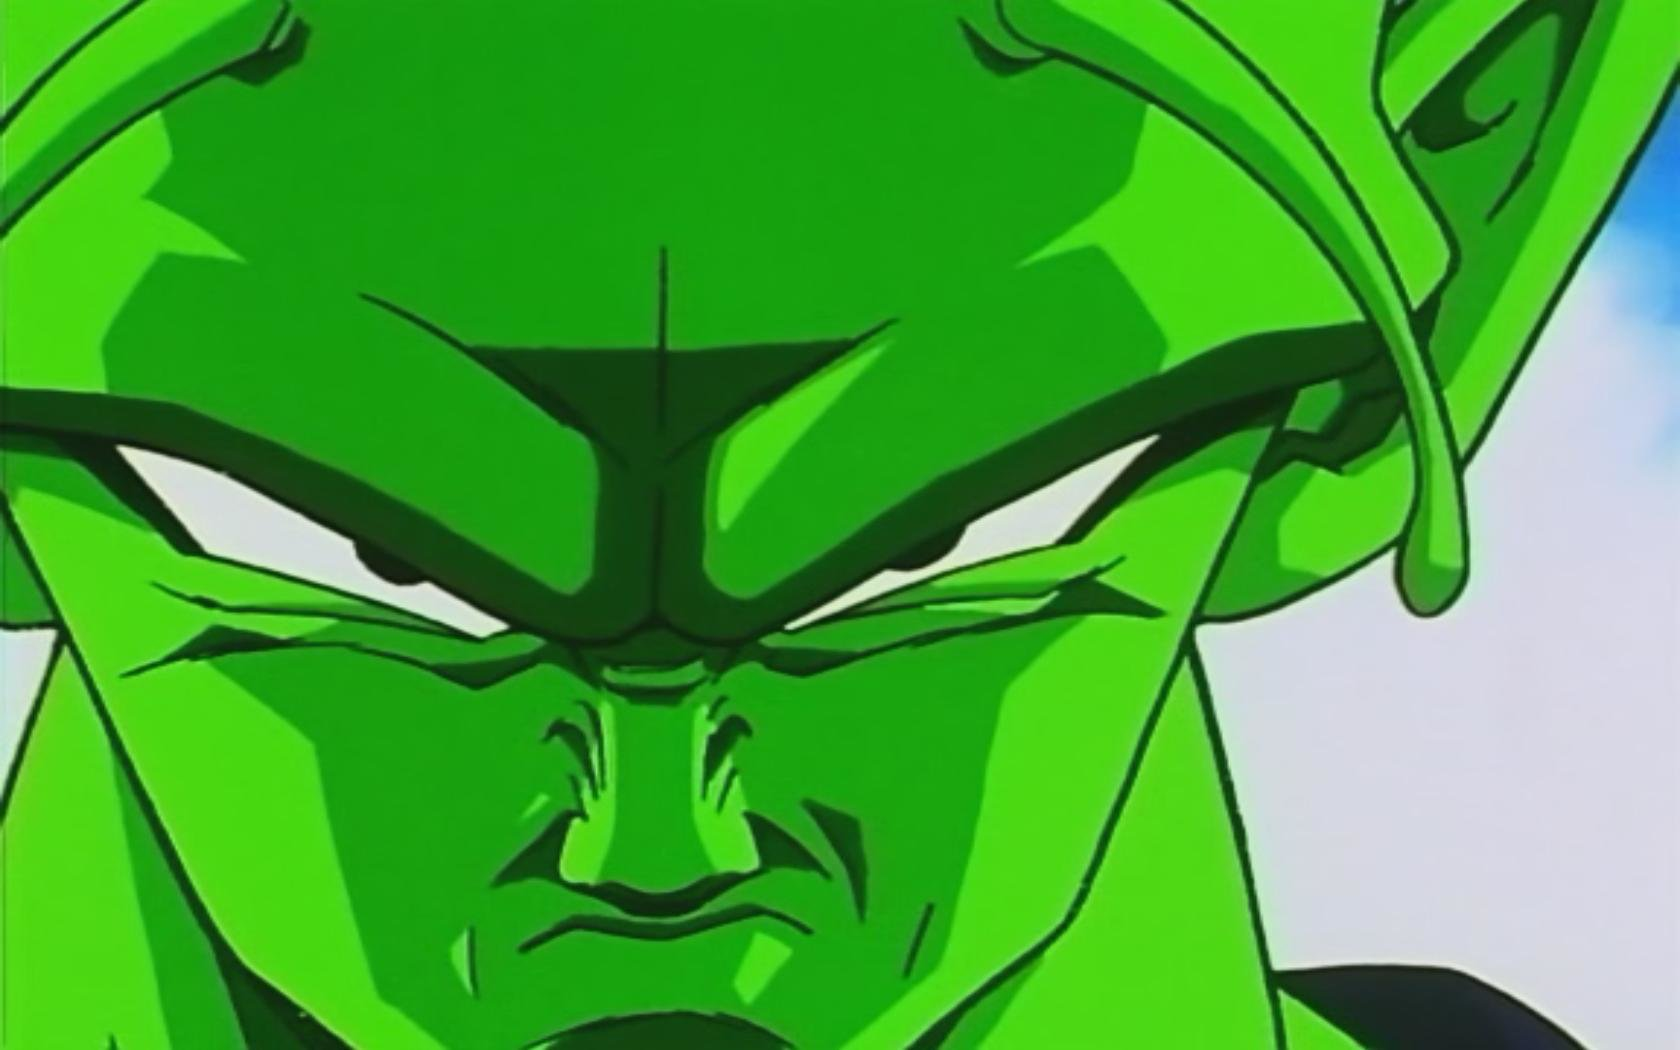 Download hd 1680x1050 Piccolo (Dragon Ball) computer background ID:461876 for free